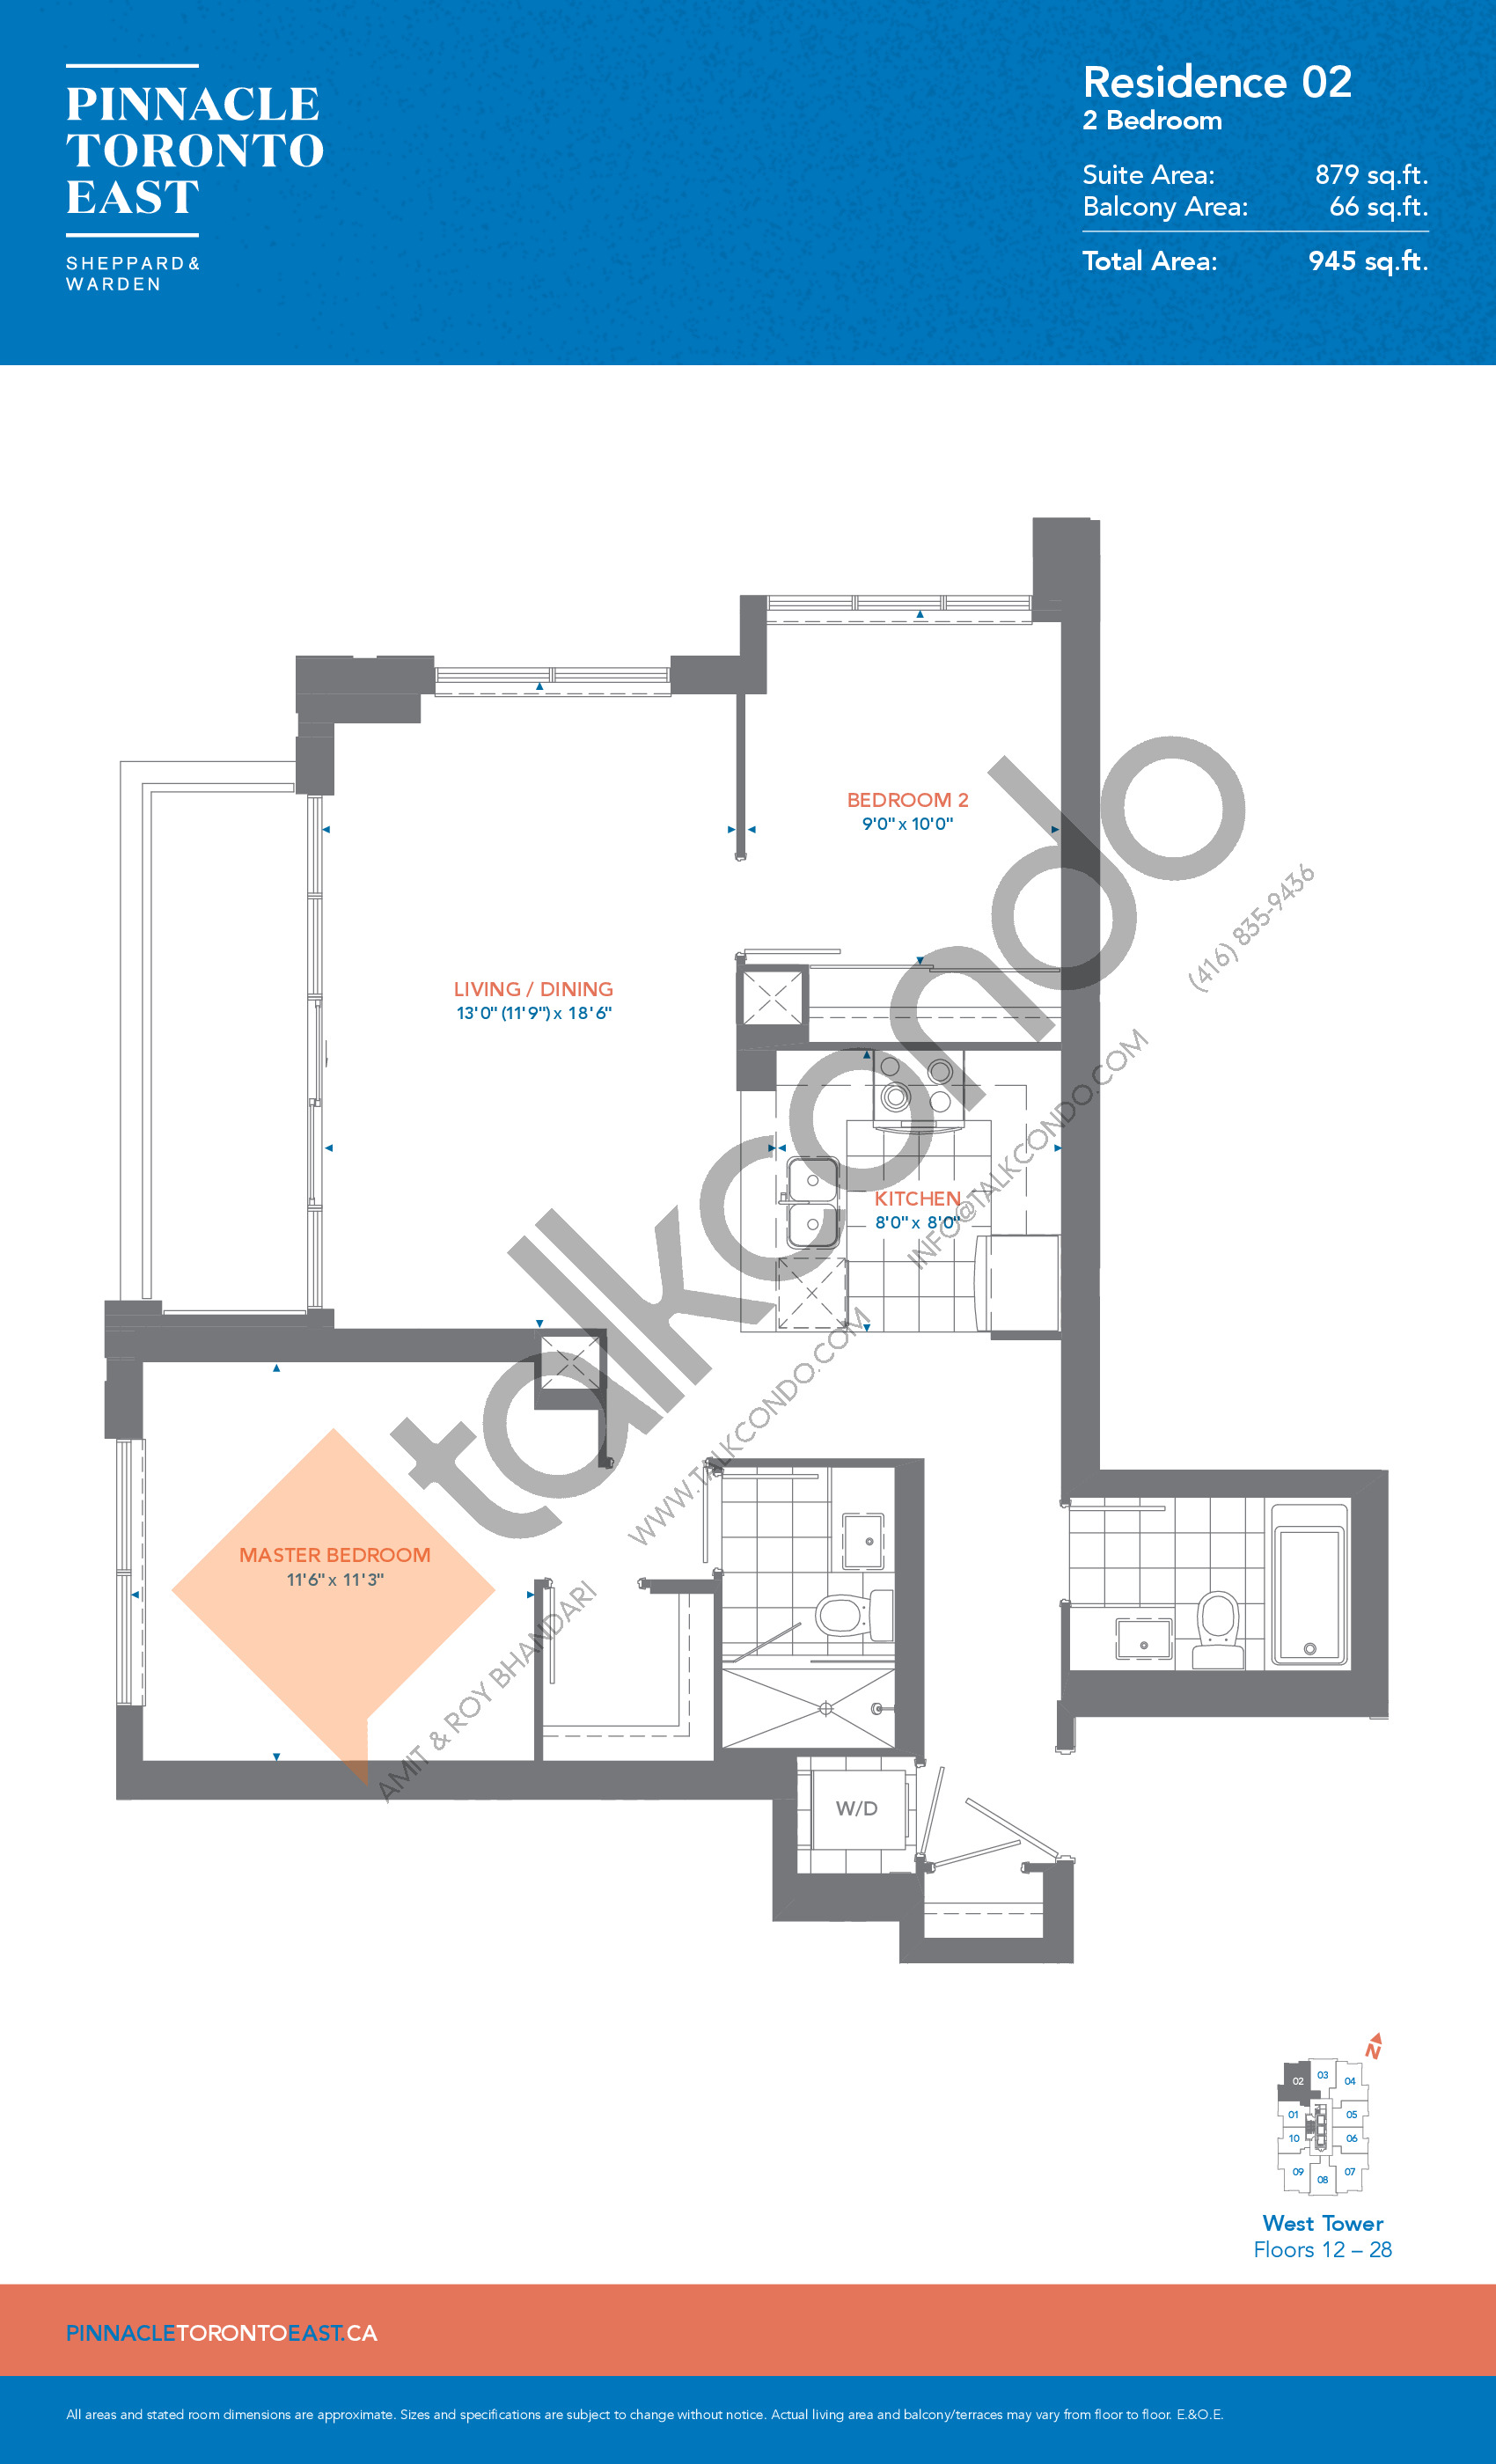 Residence 02 - West Tower Floor Plan at Pinnacle Toronto East Condos - 879 sq.ft